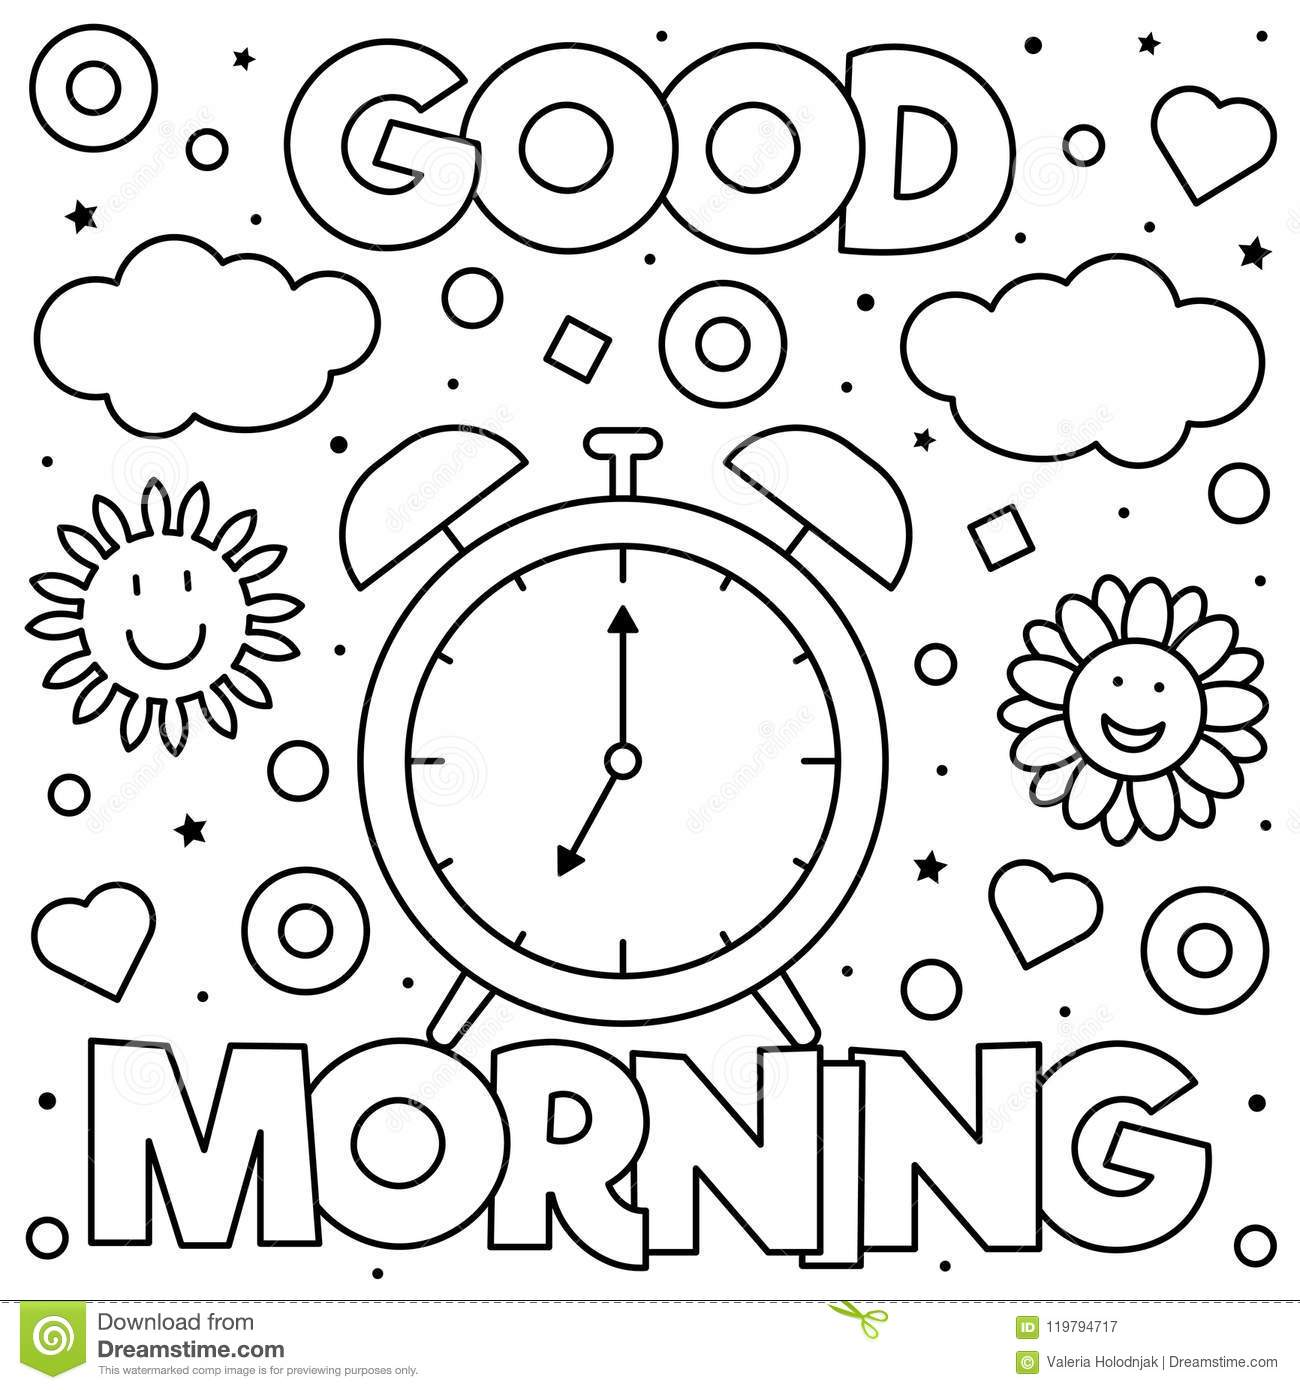 Good Morning Coloring Page Twisty Noodle Sketch Coloring Page